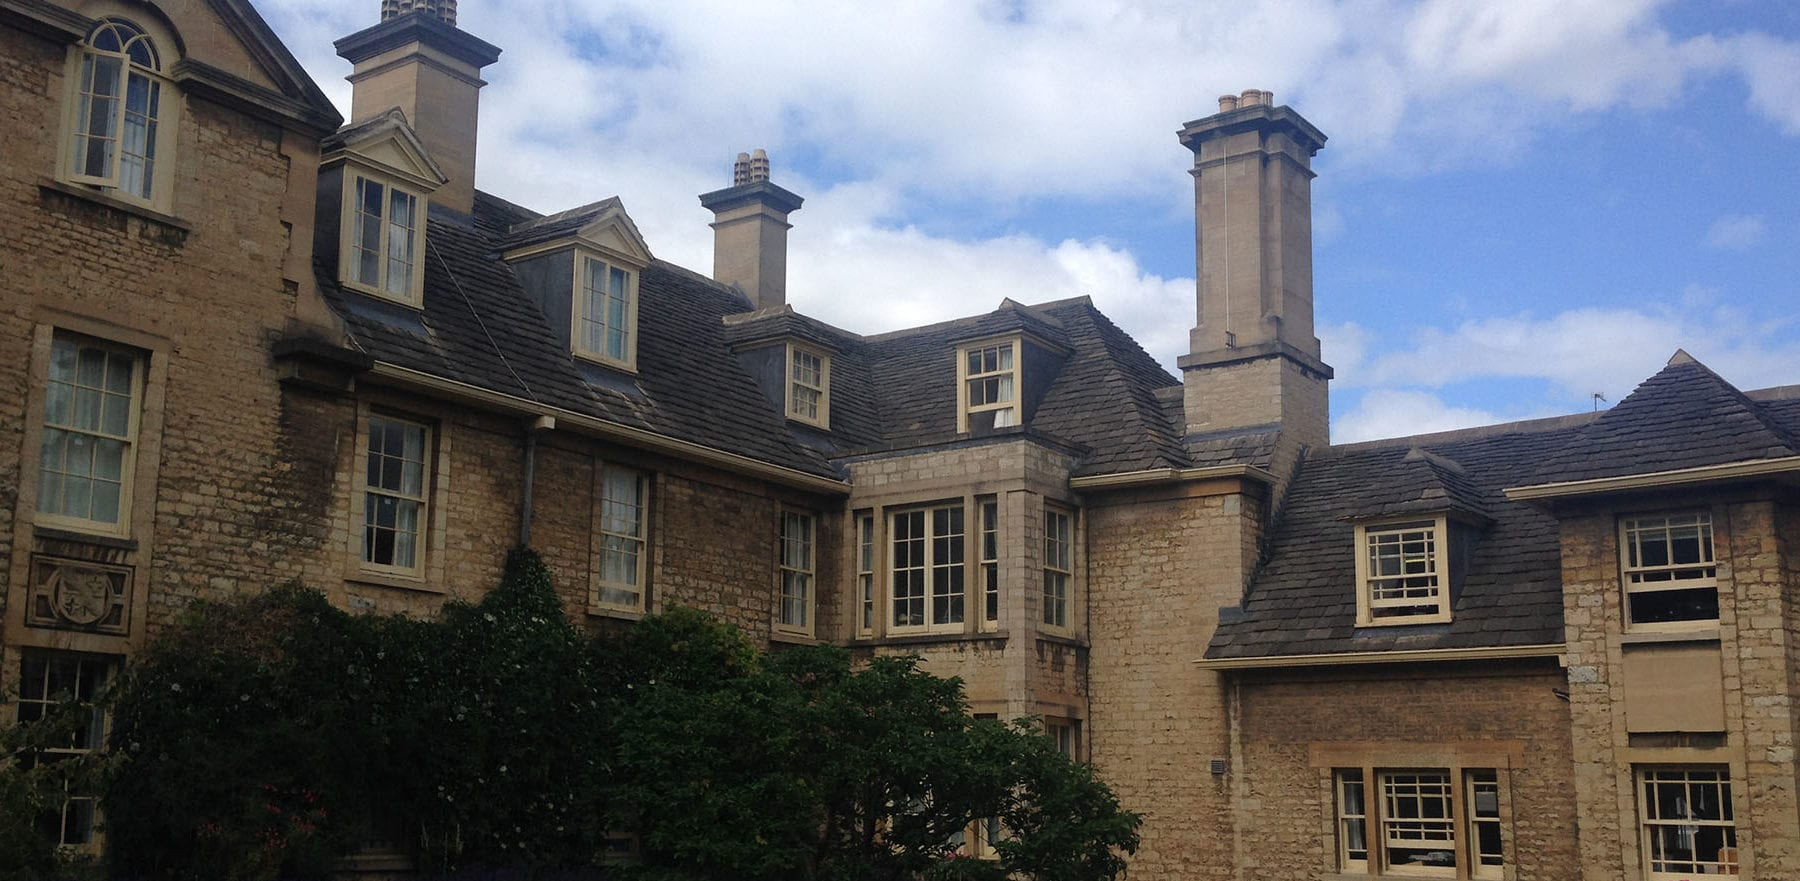 Lifestiles - Natural Stone Aged Roof Tiles - Somerville College, England 4